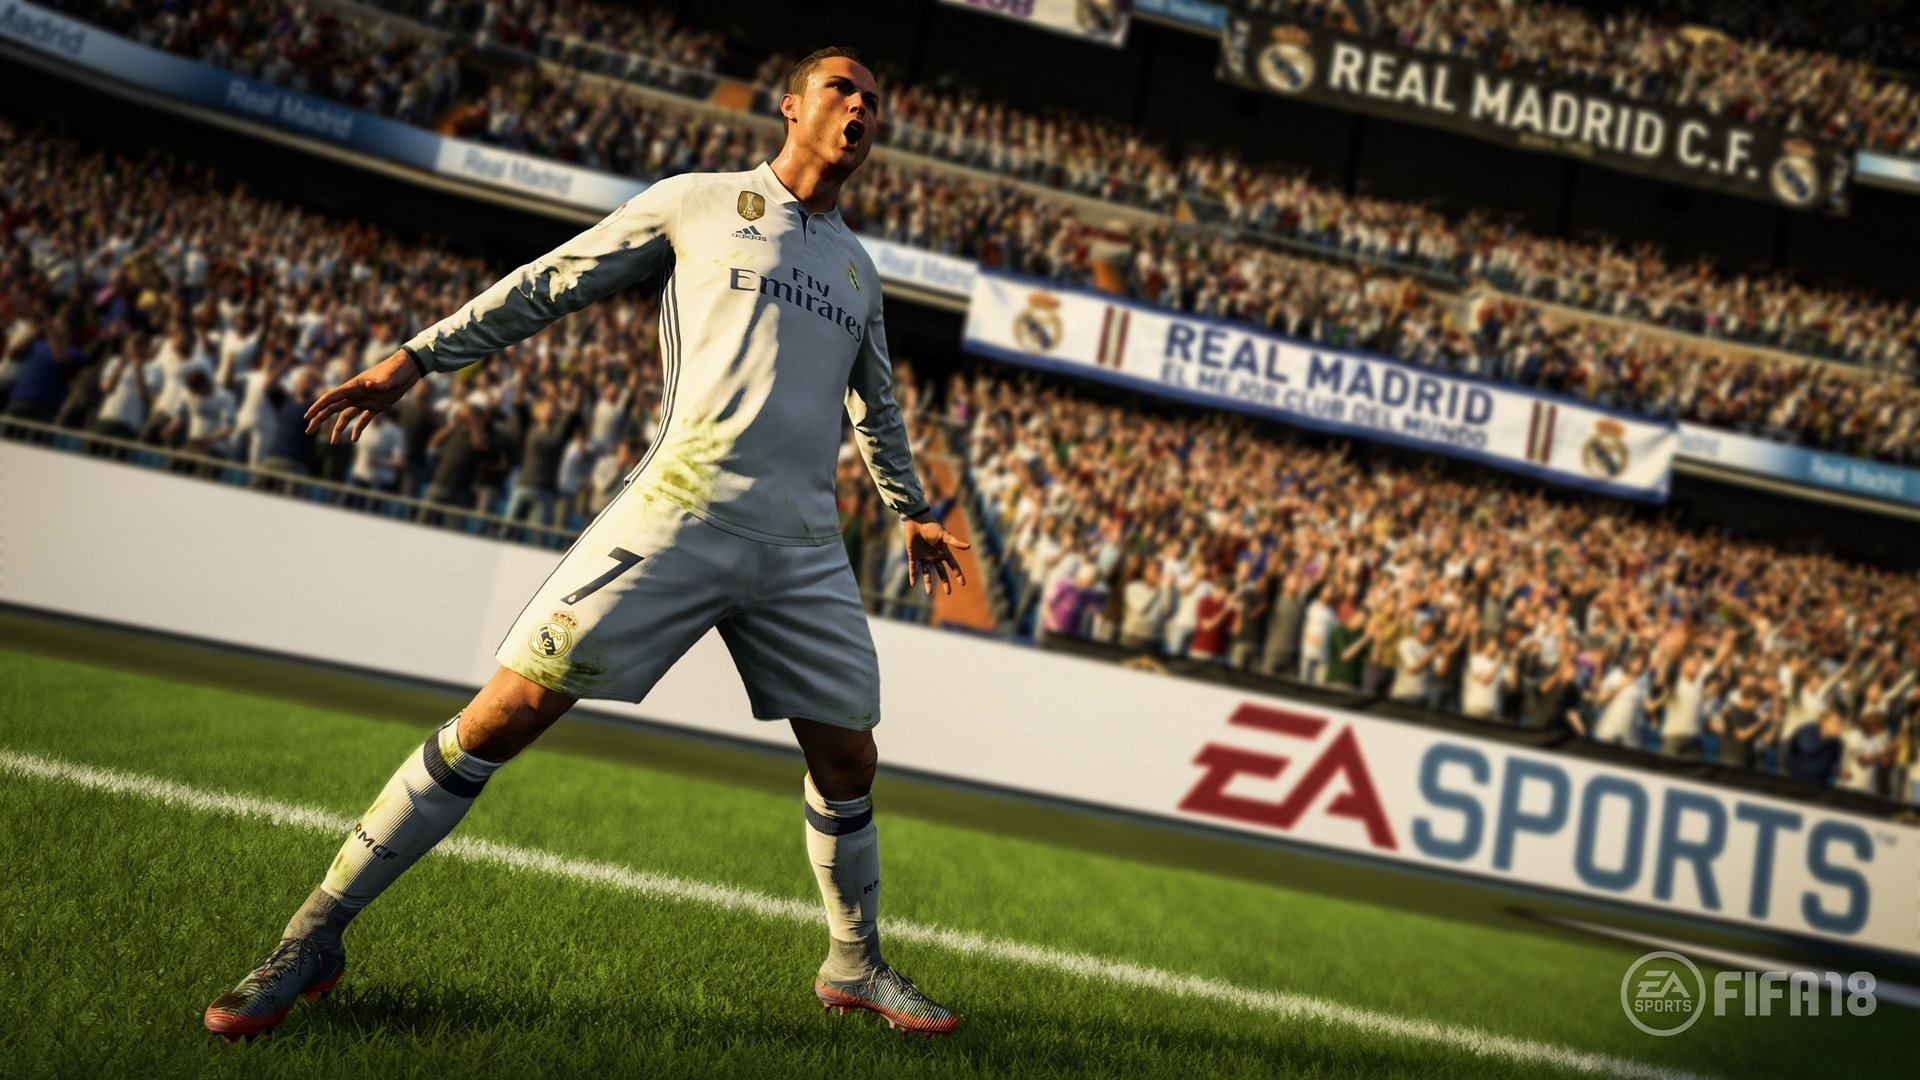 8 FIFA 18 HD Wallpapers